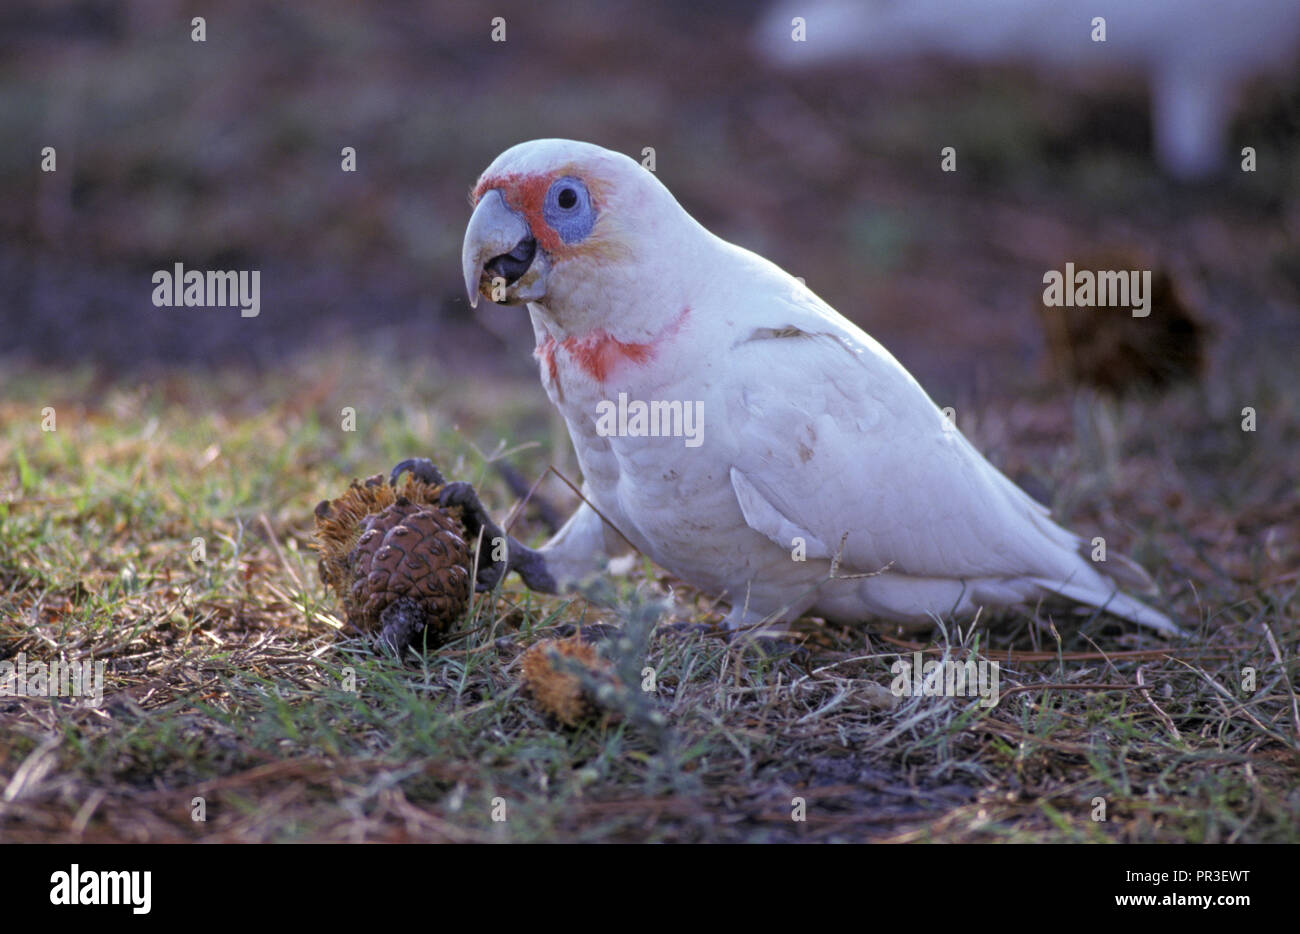 LONG-BILLED CORELLA (CACATUA TENUIROSTRIS) ALSO KNOWN AS SLENDER-BILLED CORELLA SEEN HERE FEEDING ON A PINE CONE, NEW SOUTH WALES, AUSTRALIA. - Stock Image